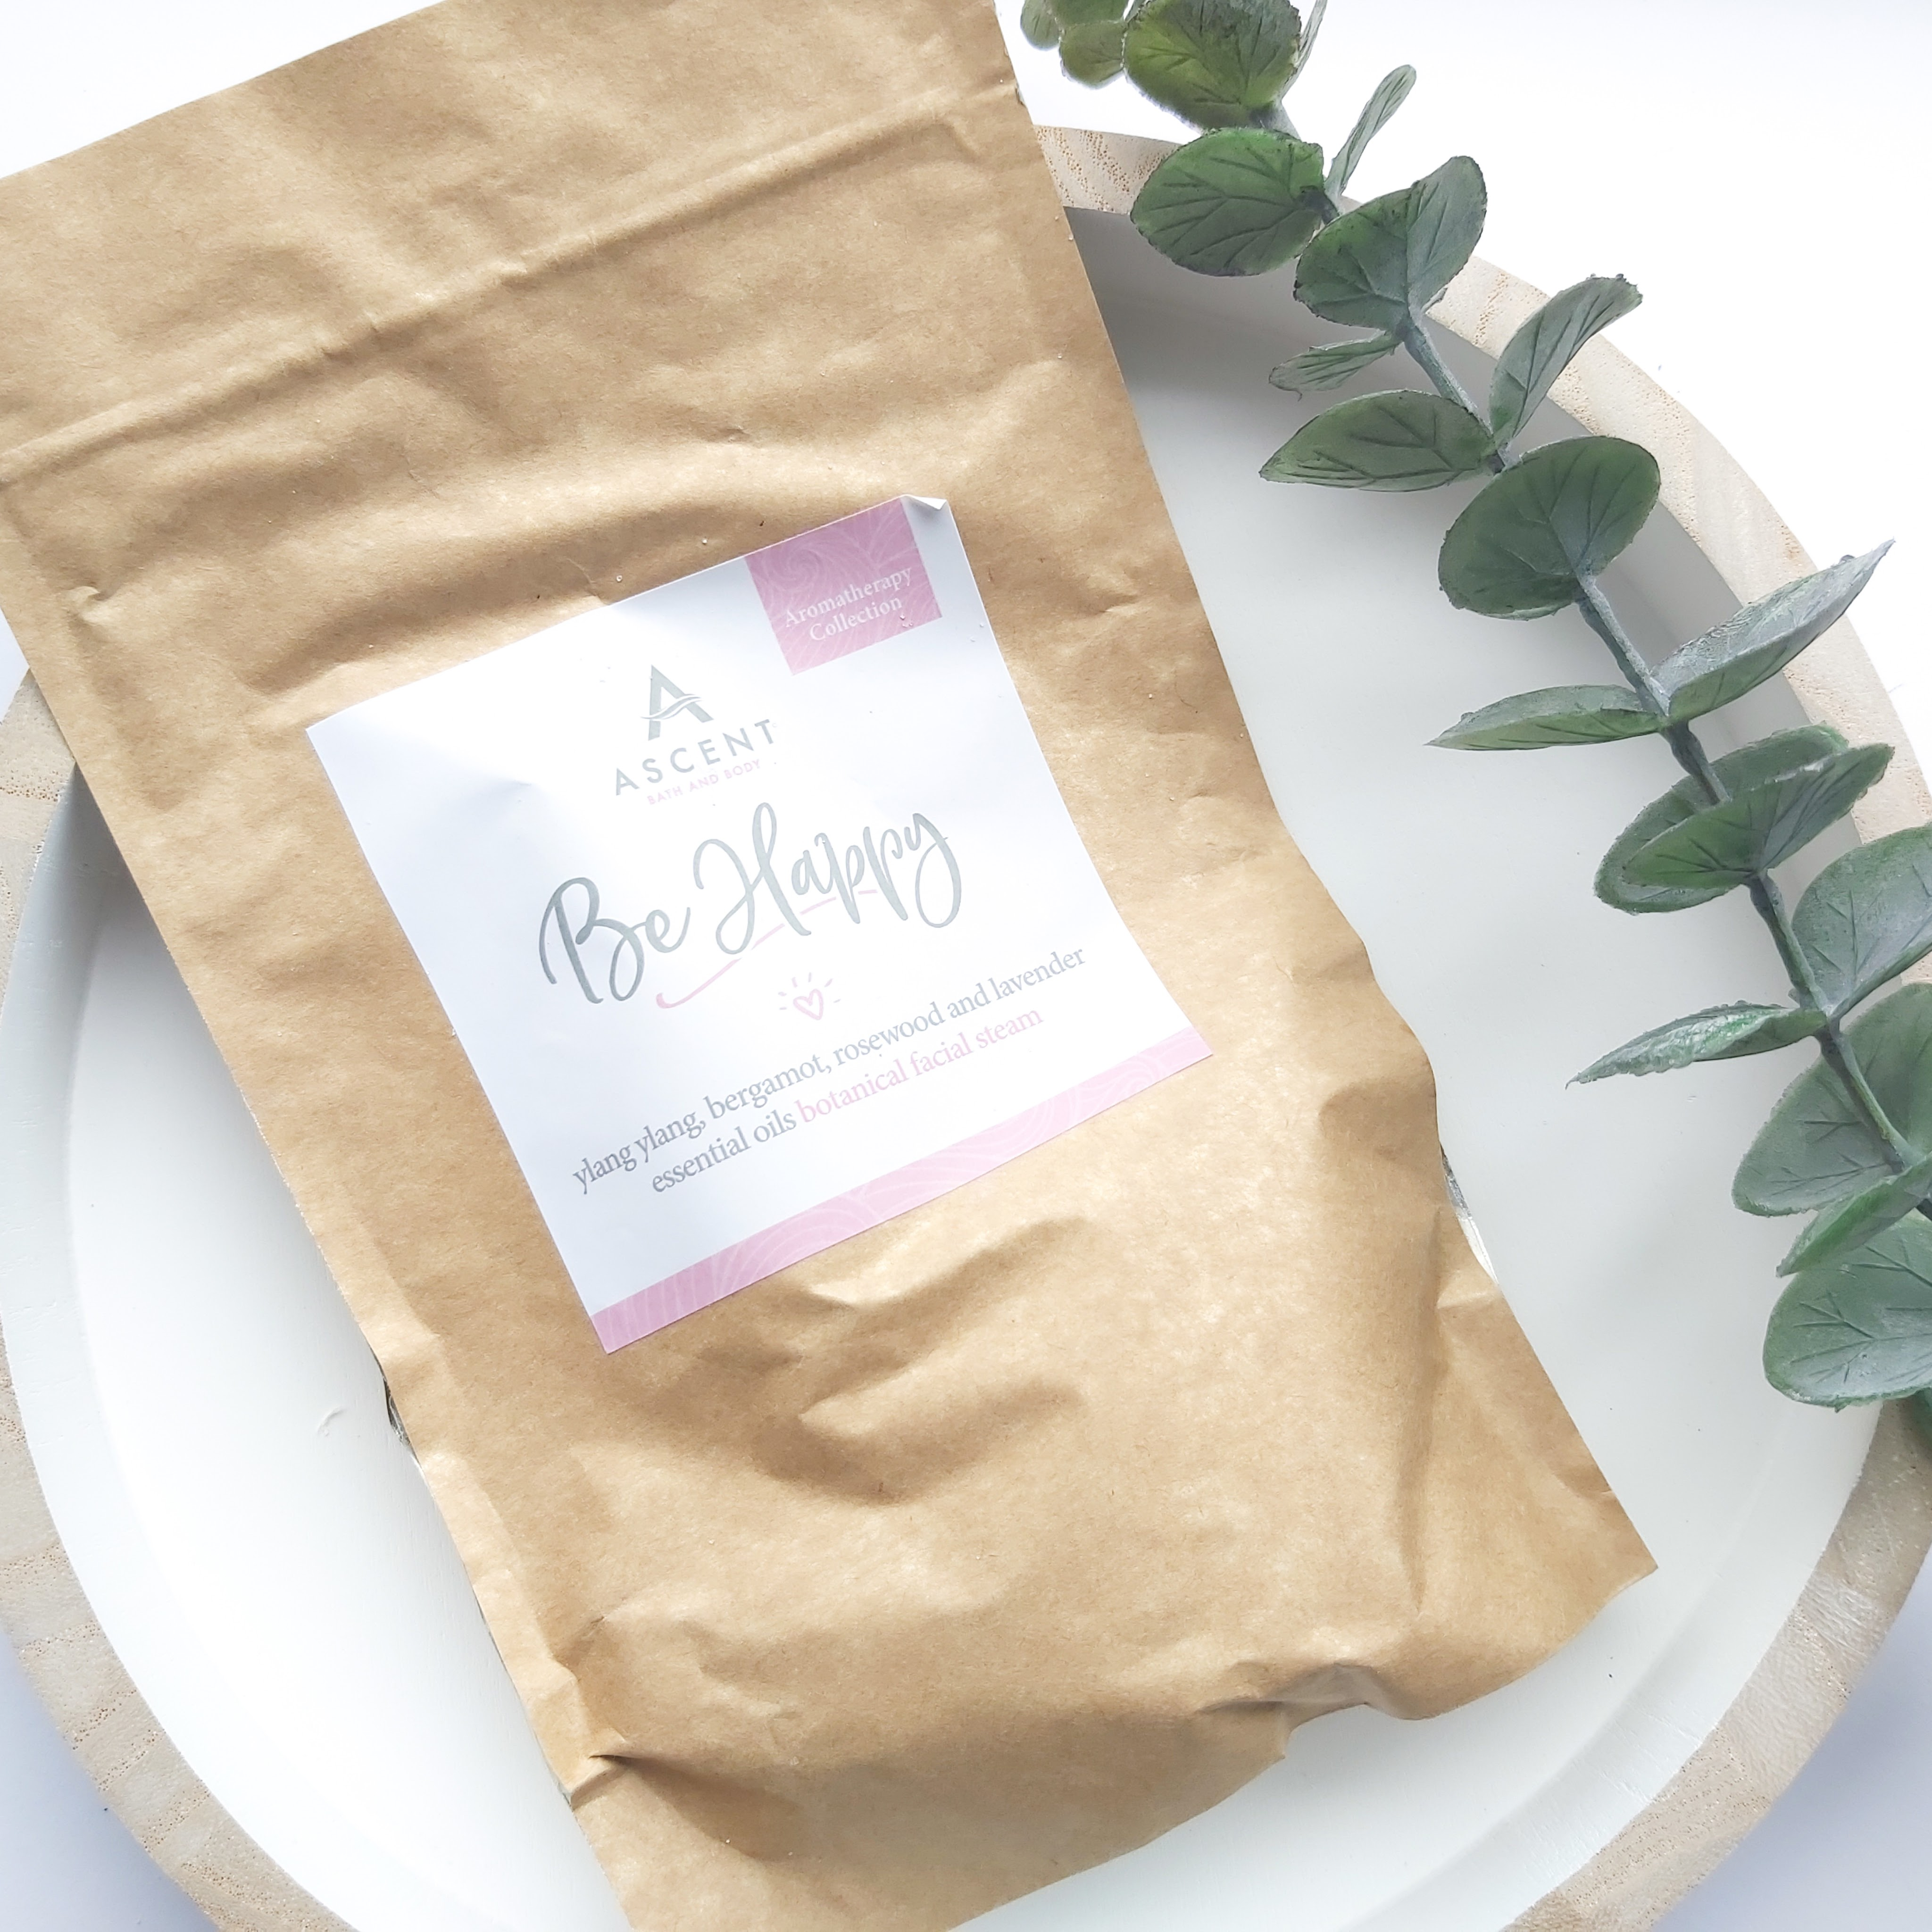 A brown pouch of facial steam sits on a white, wooden round tray with a eucalyptus stem to the side - Freedm Street Subscription Beauty Box review by Beauty Folio